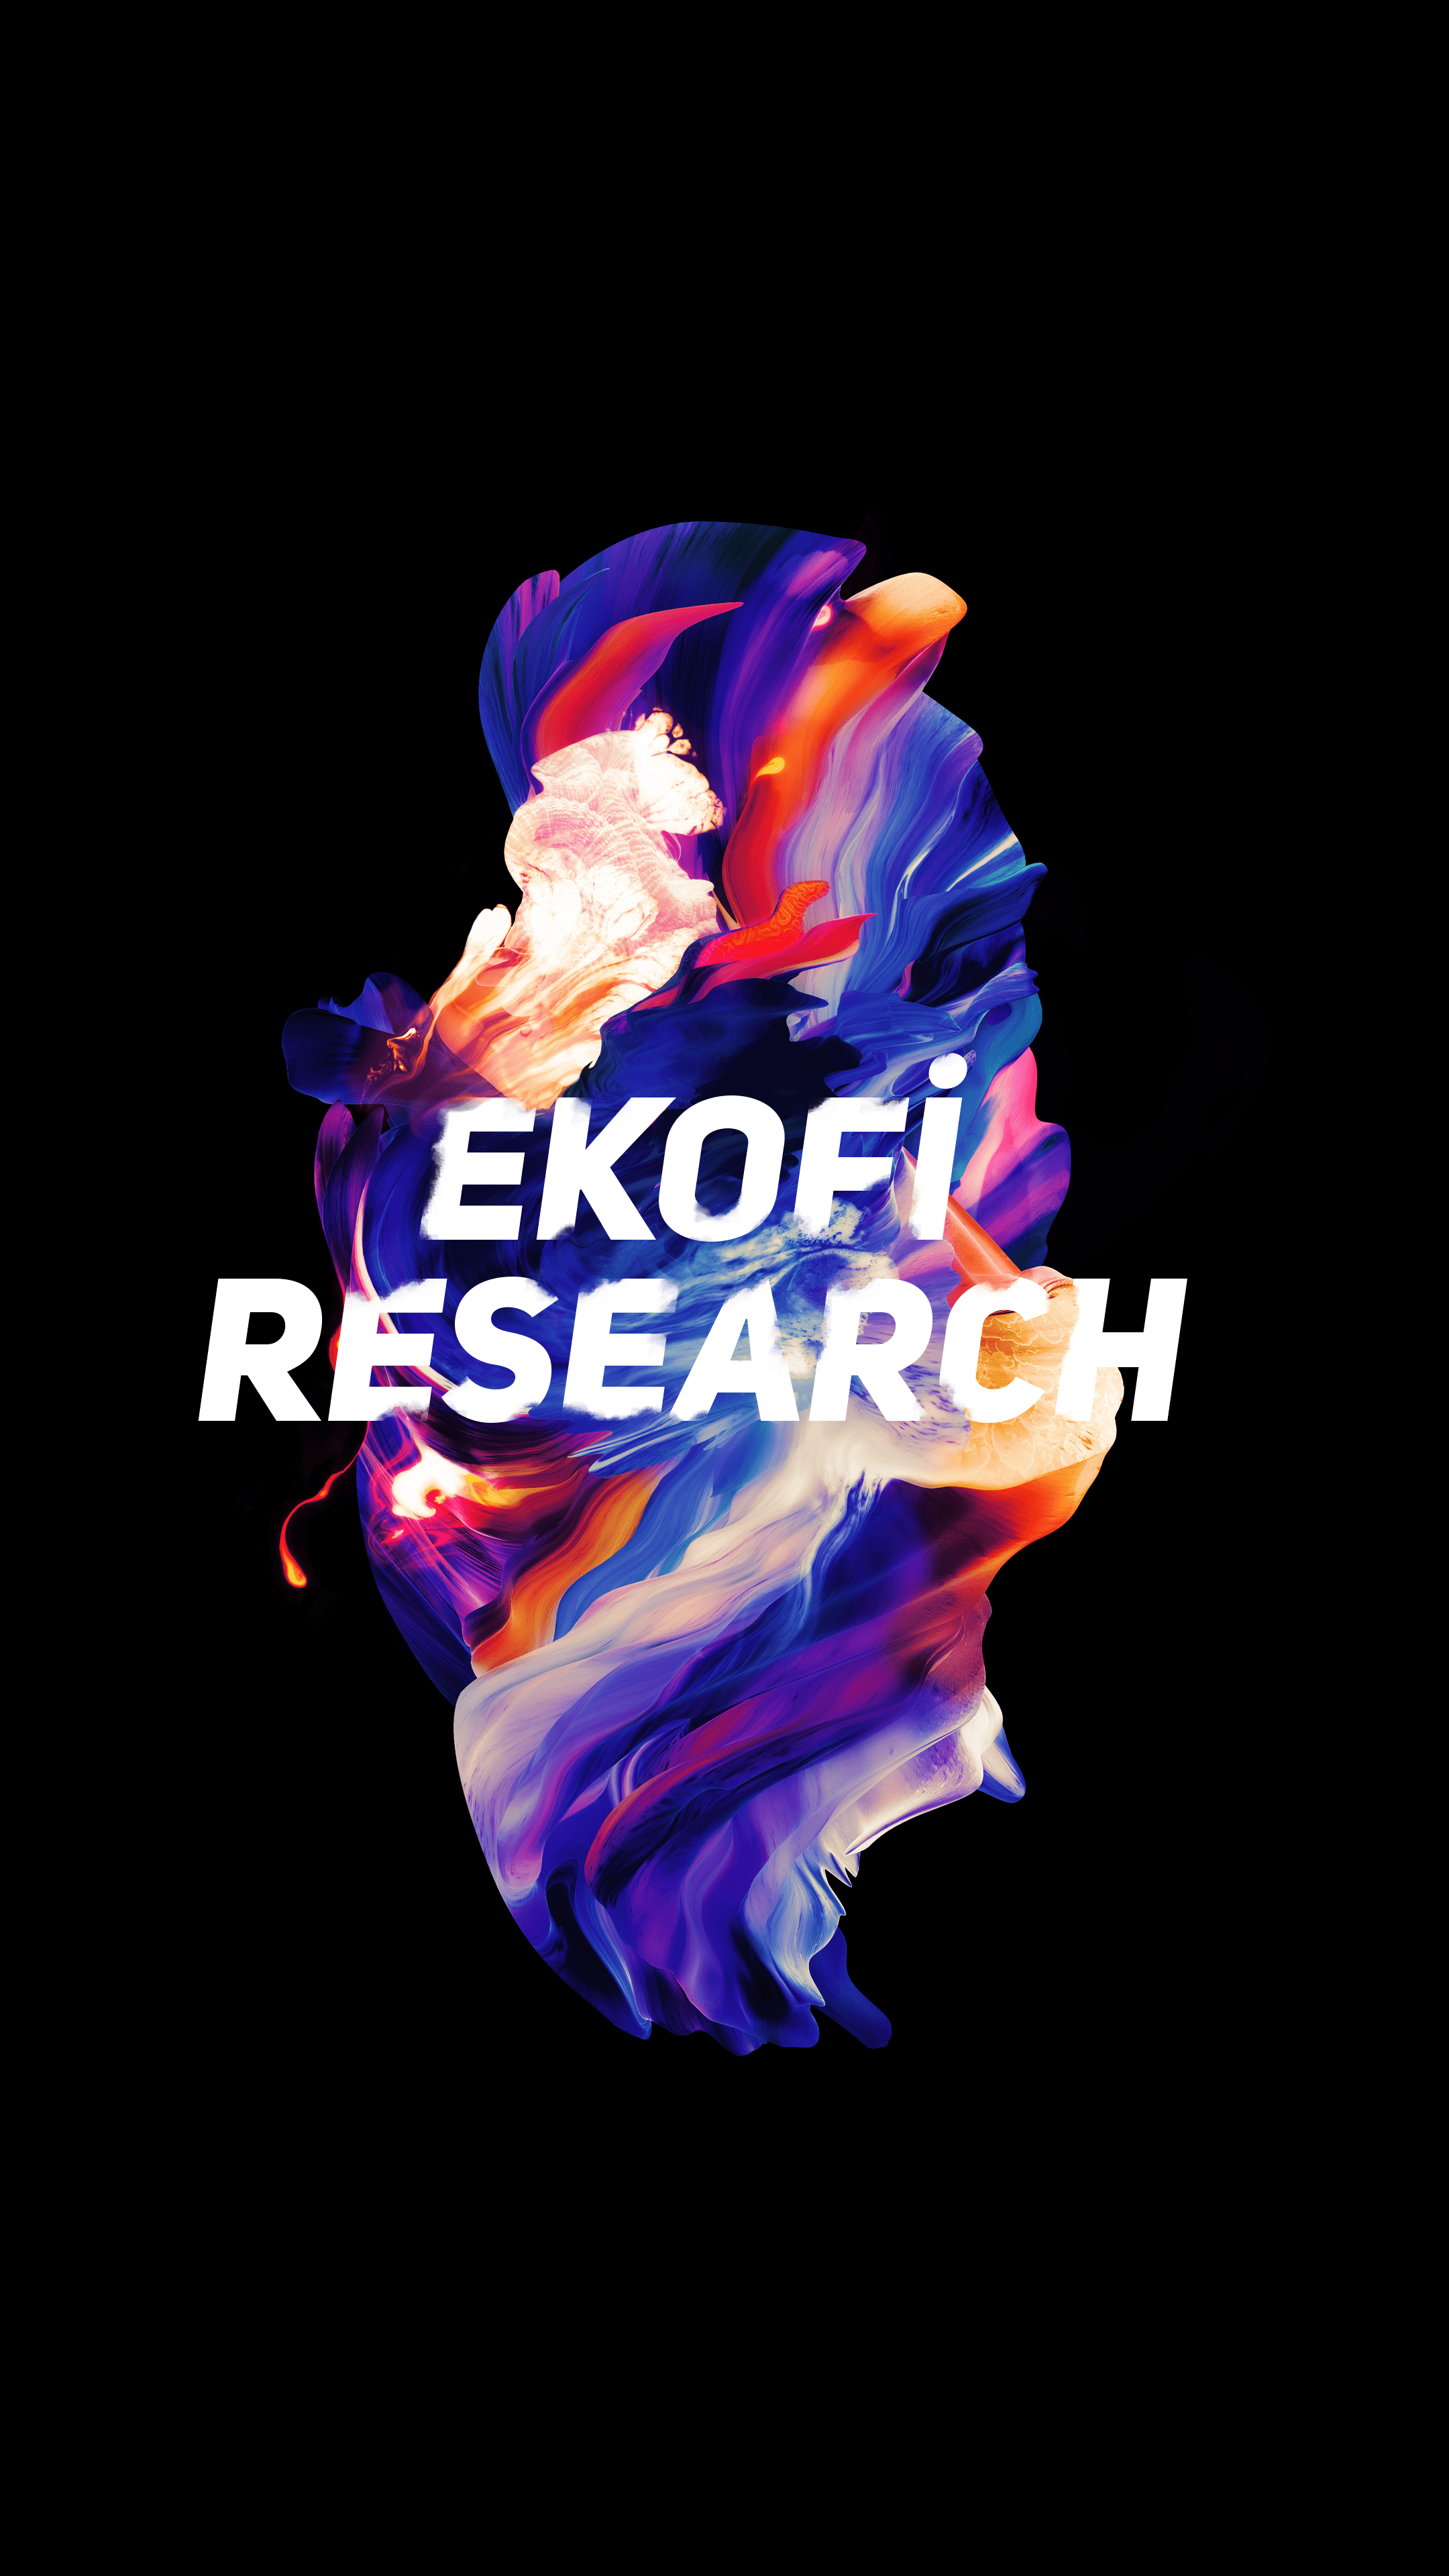 Ekofi Research